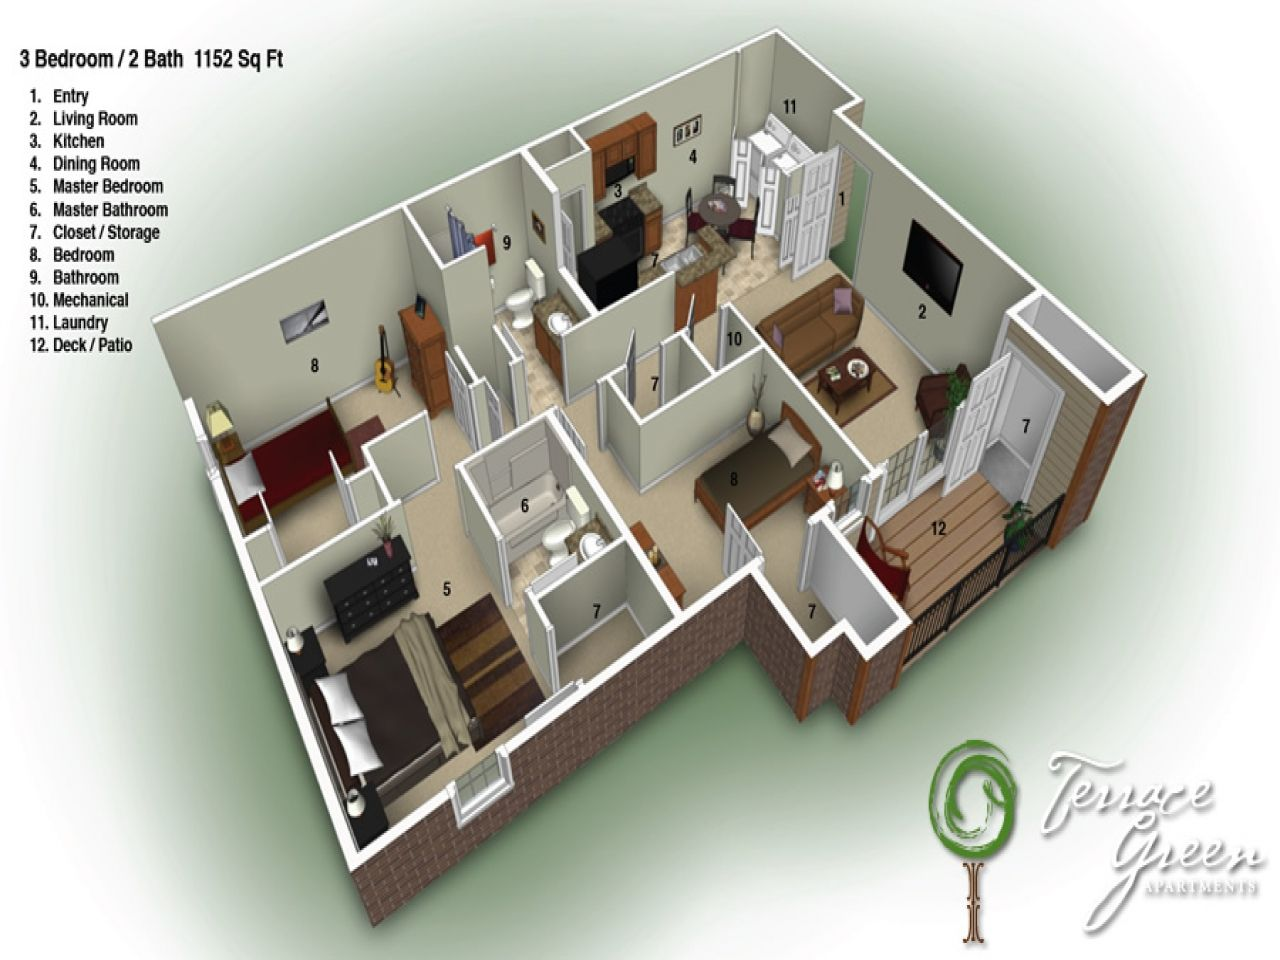 2 Bedroom House Designs Perfect 3 Bedroom 2 Bath 35 In With 3 Bedroom 2 Bath  Aldy Milton